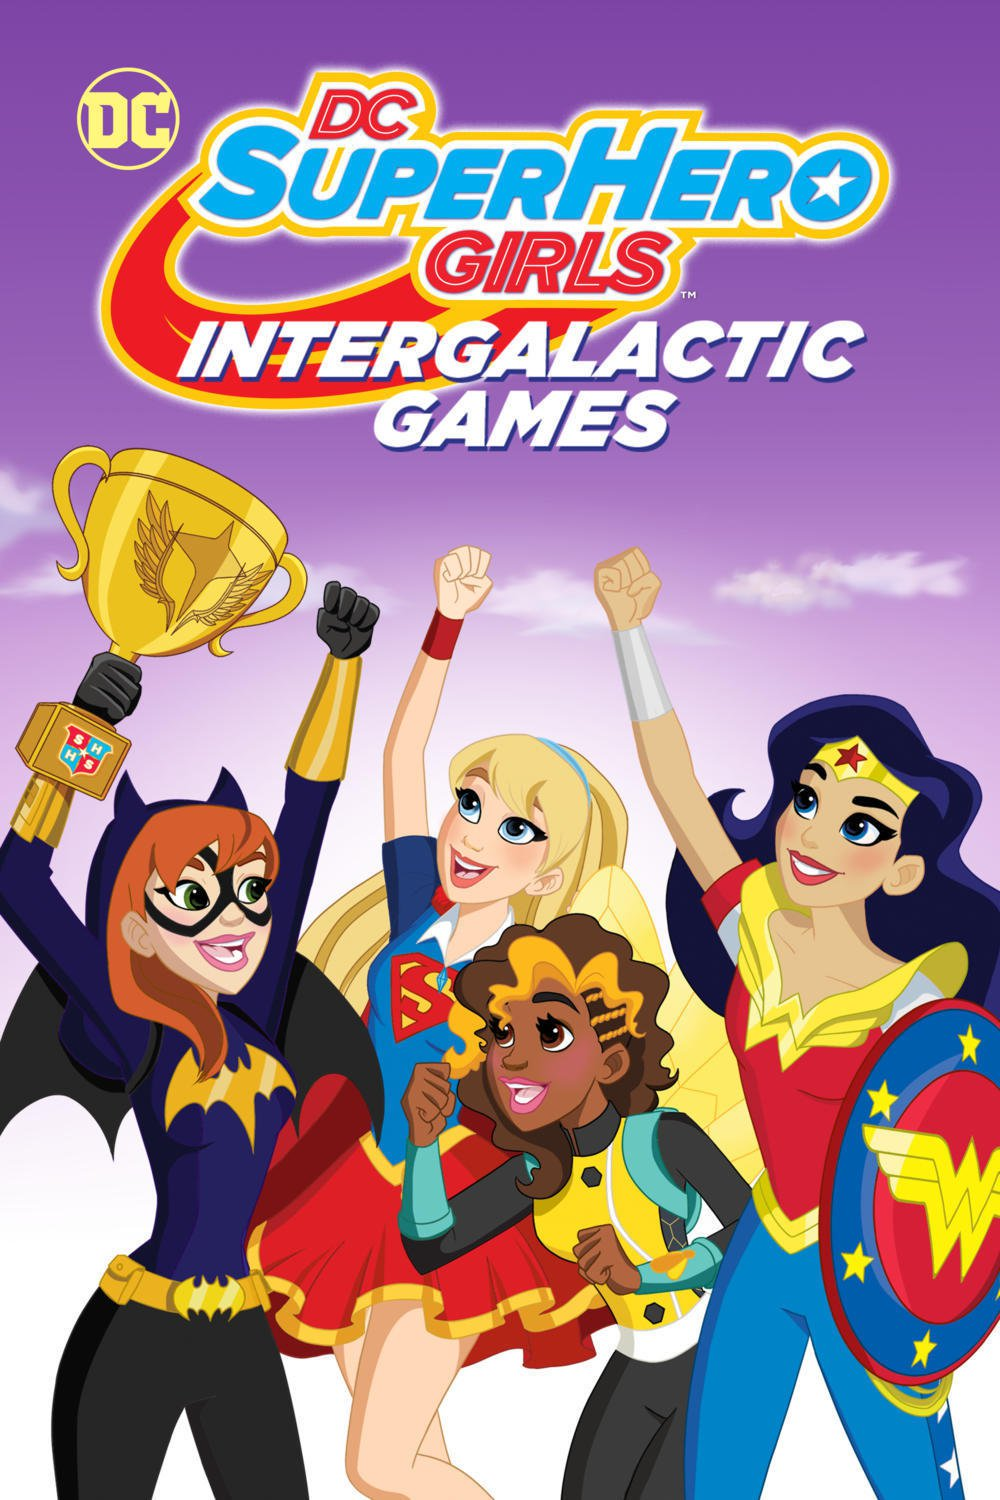 image DC Super Hero Girls: Intergalactic Games (2017) (V) Watch Full Movie Free Online